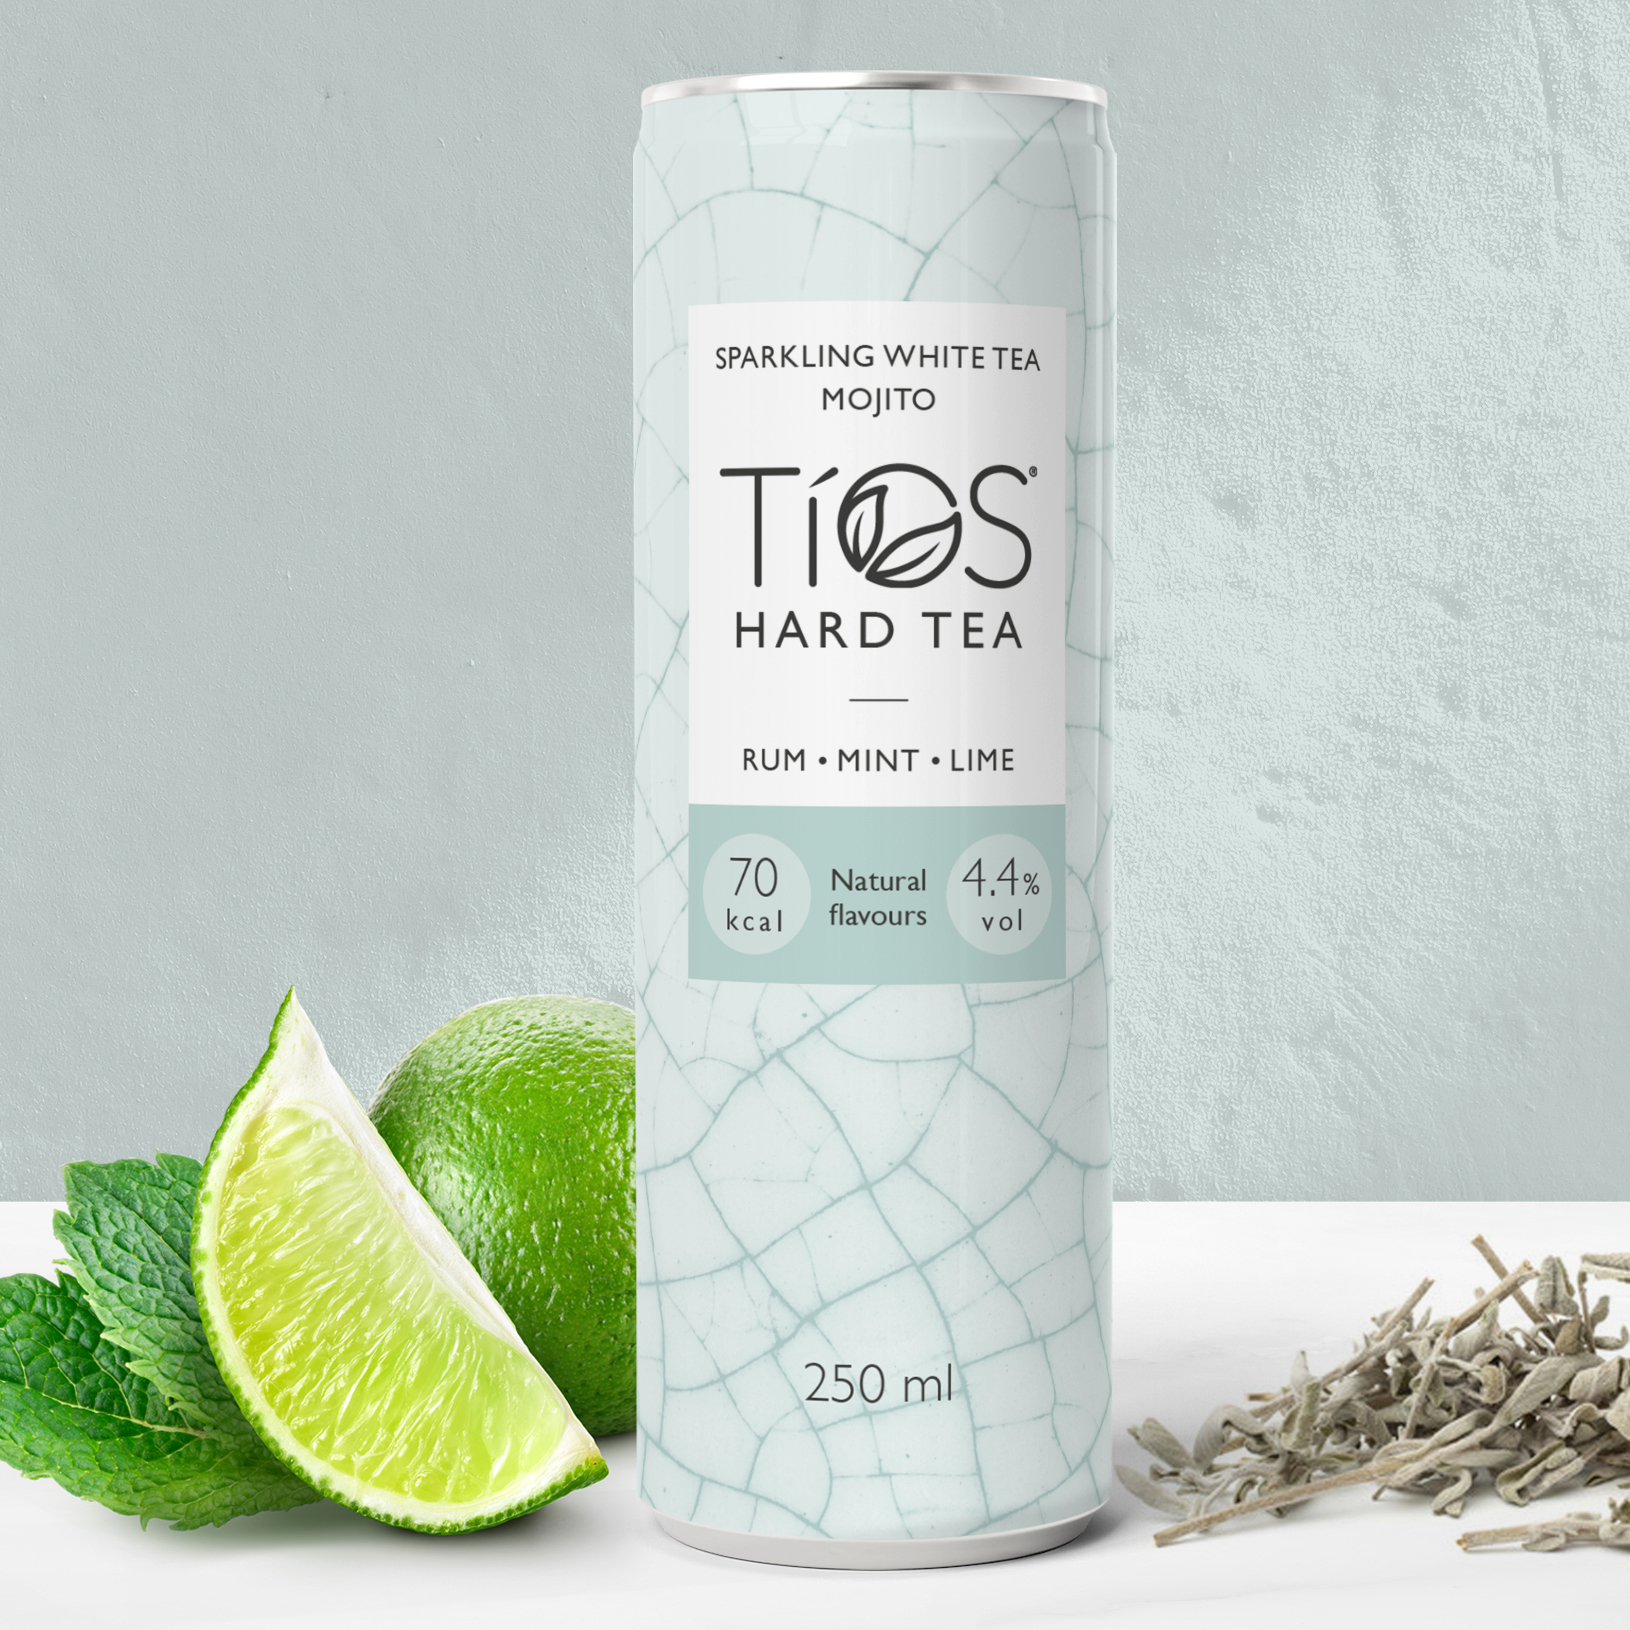 Tios White Tea Mojito can with ingredients